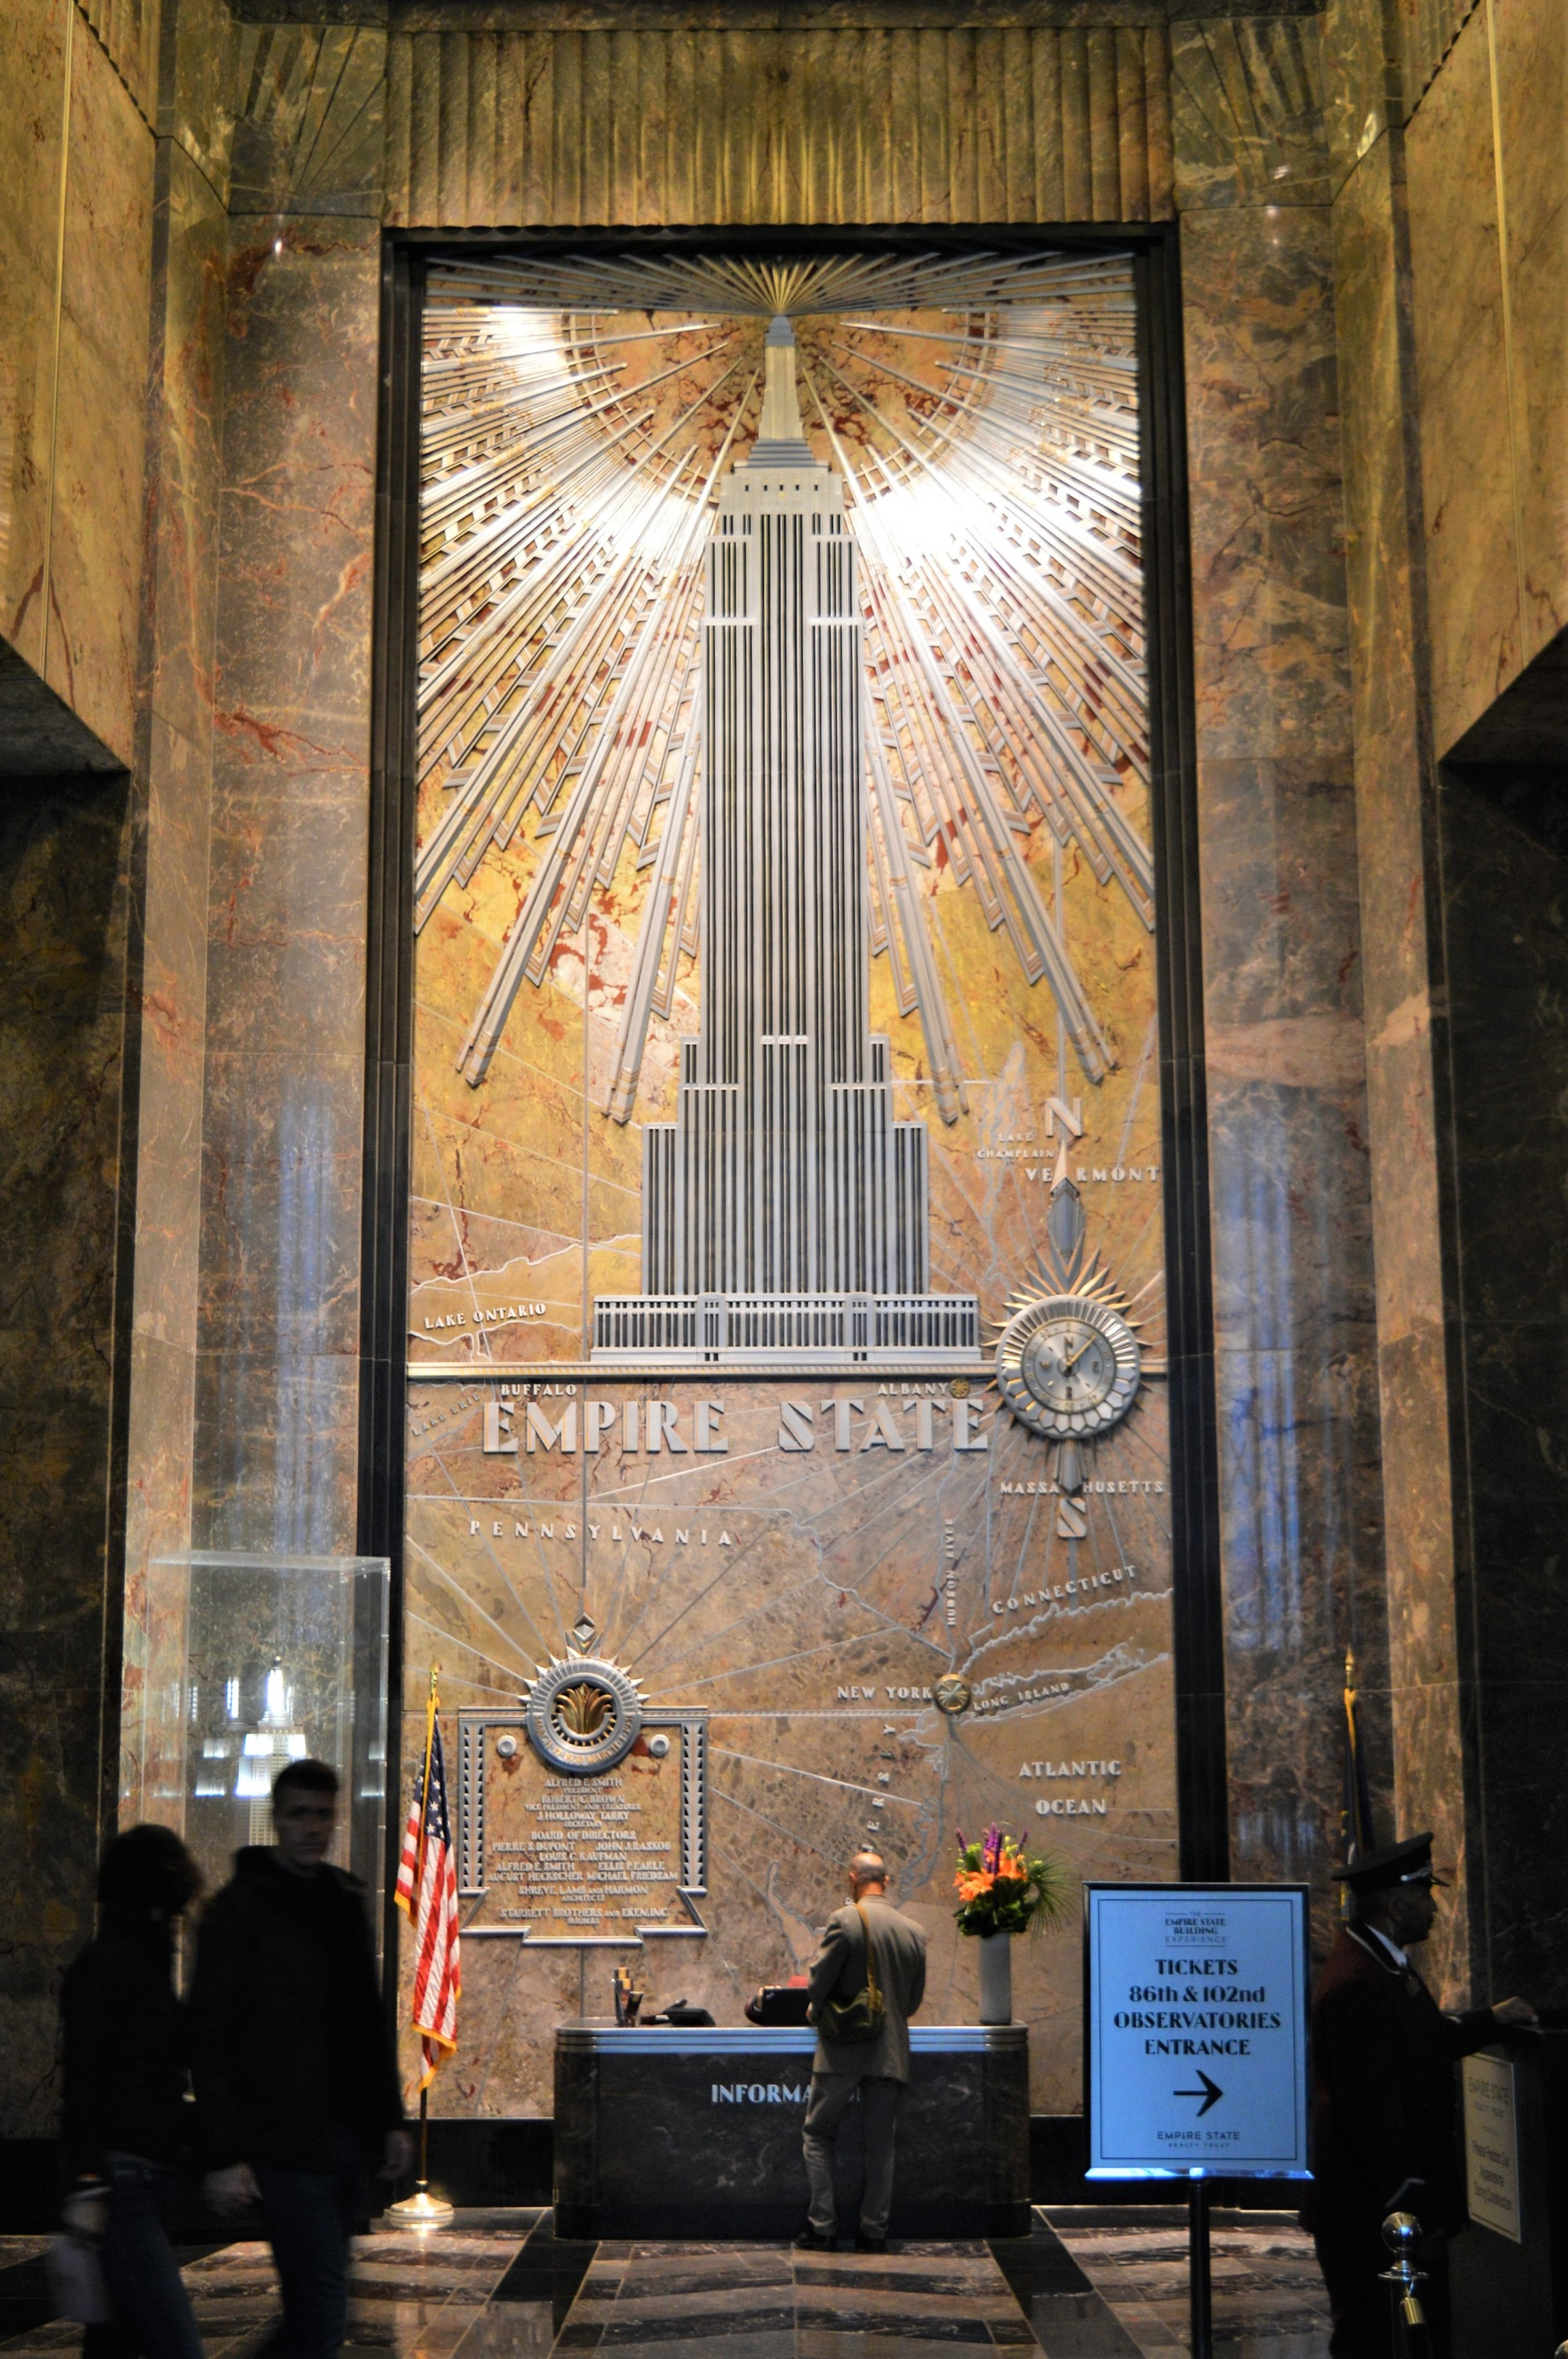 The Empire State Building Lobby